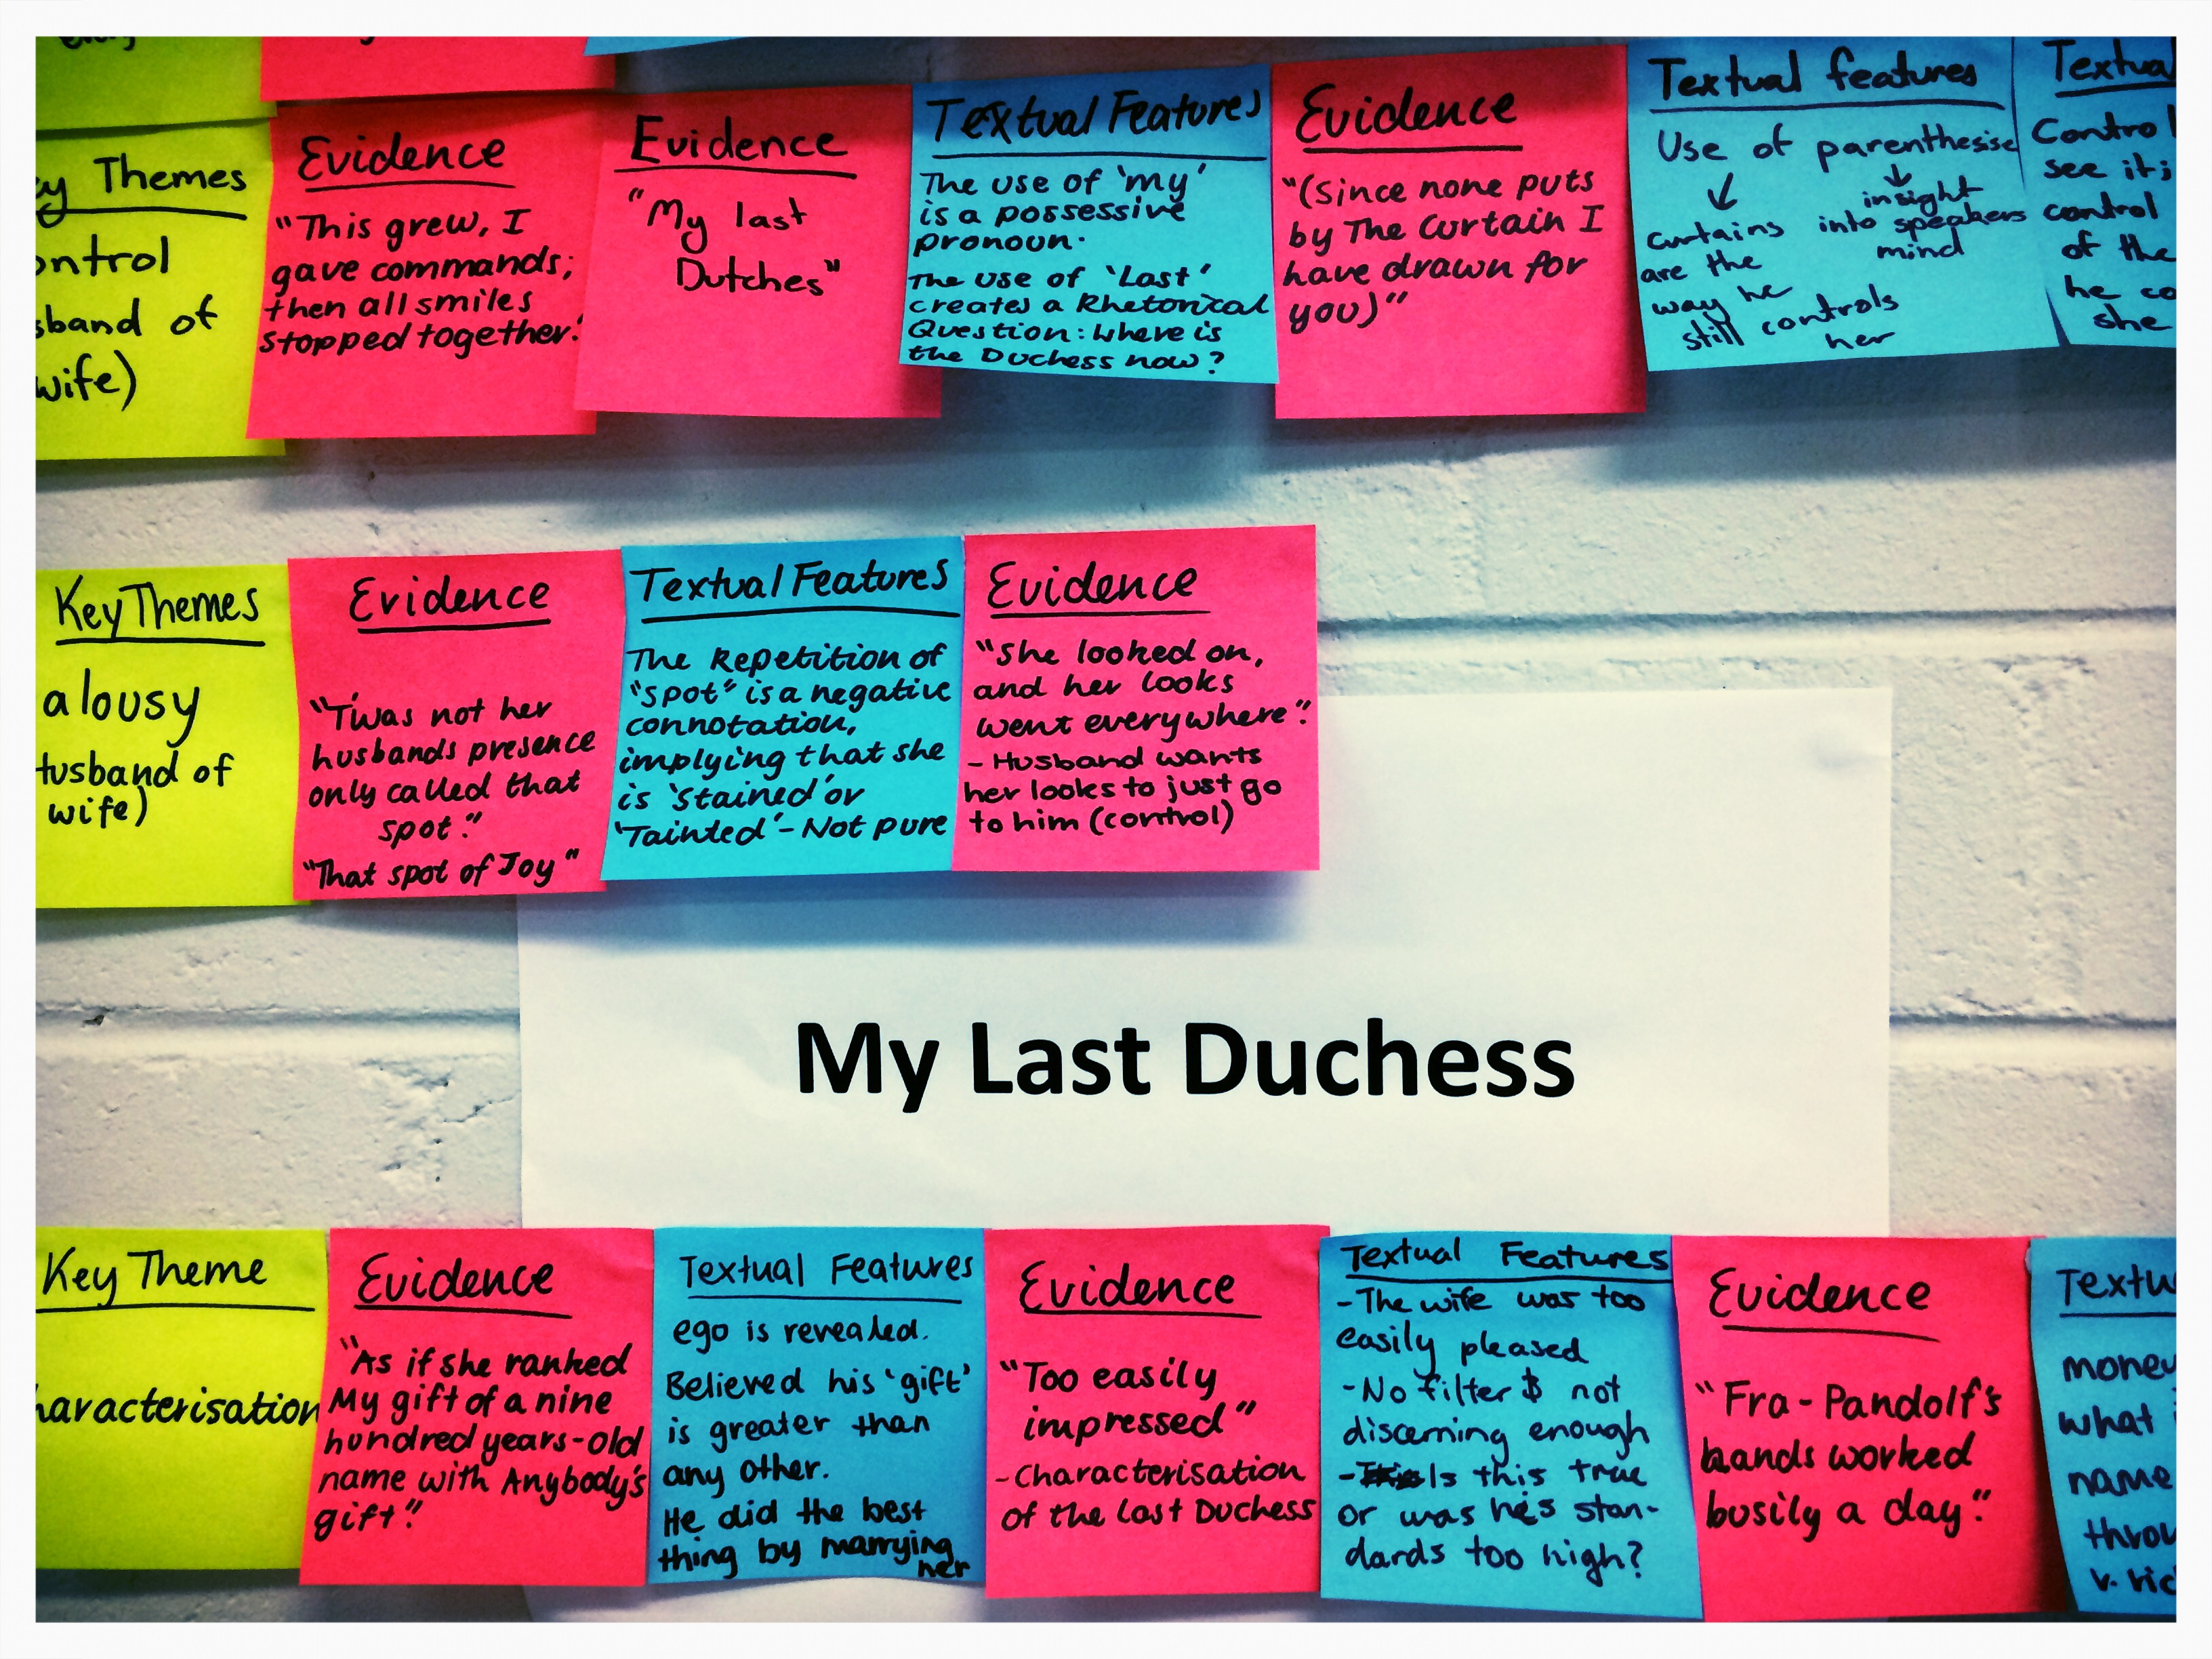 Critical essay on my last duchess by robert browning